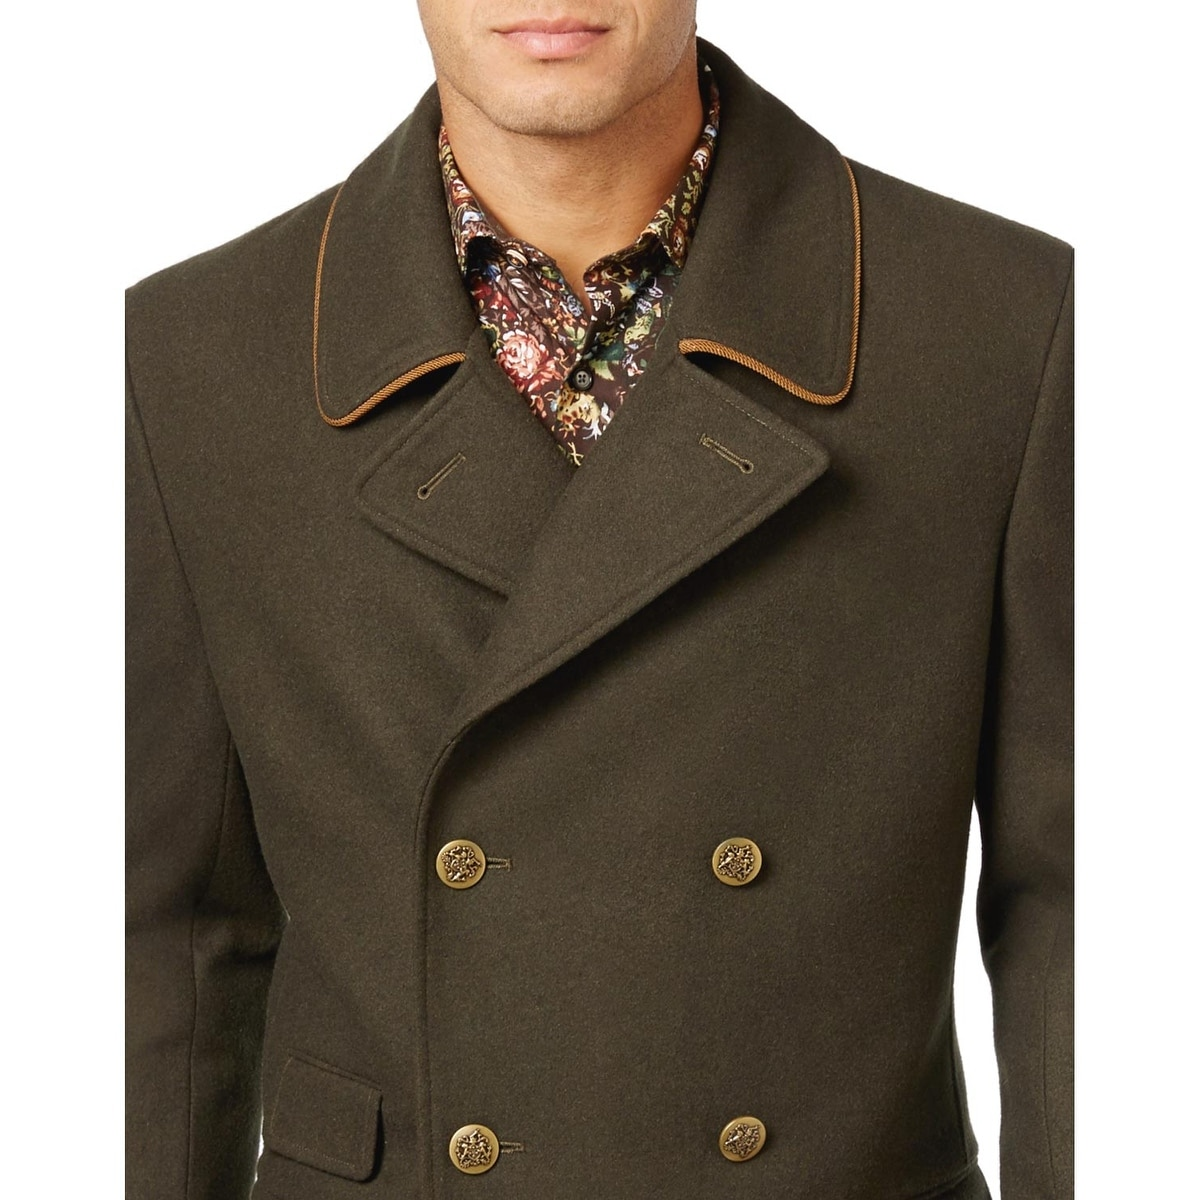 8079762b5b8 Shop Tallia Orange Mens Wool Blend Peacoat Overcoat Dark Olive Green Medium  M - Free Shipping Today - Overstock - 17378699